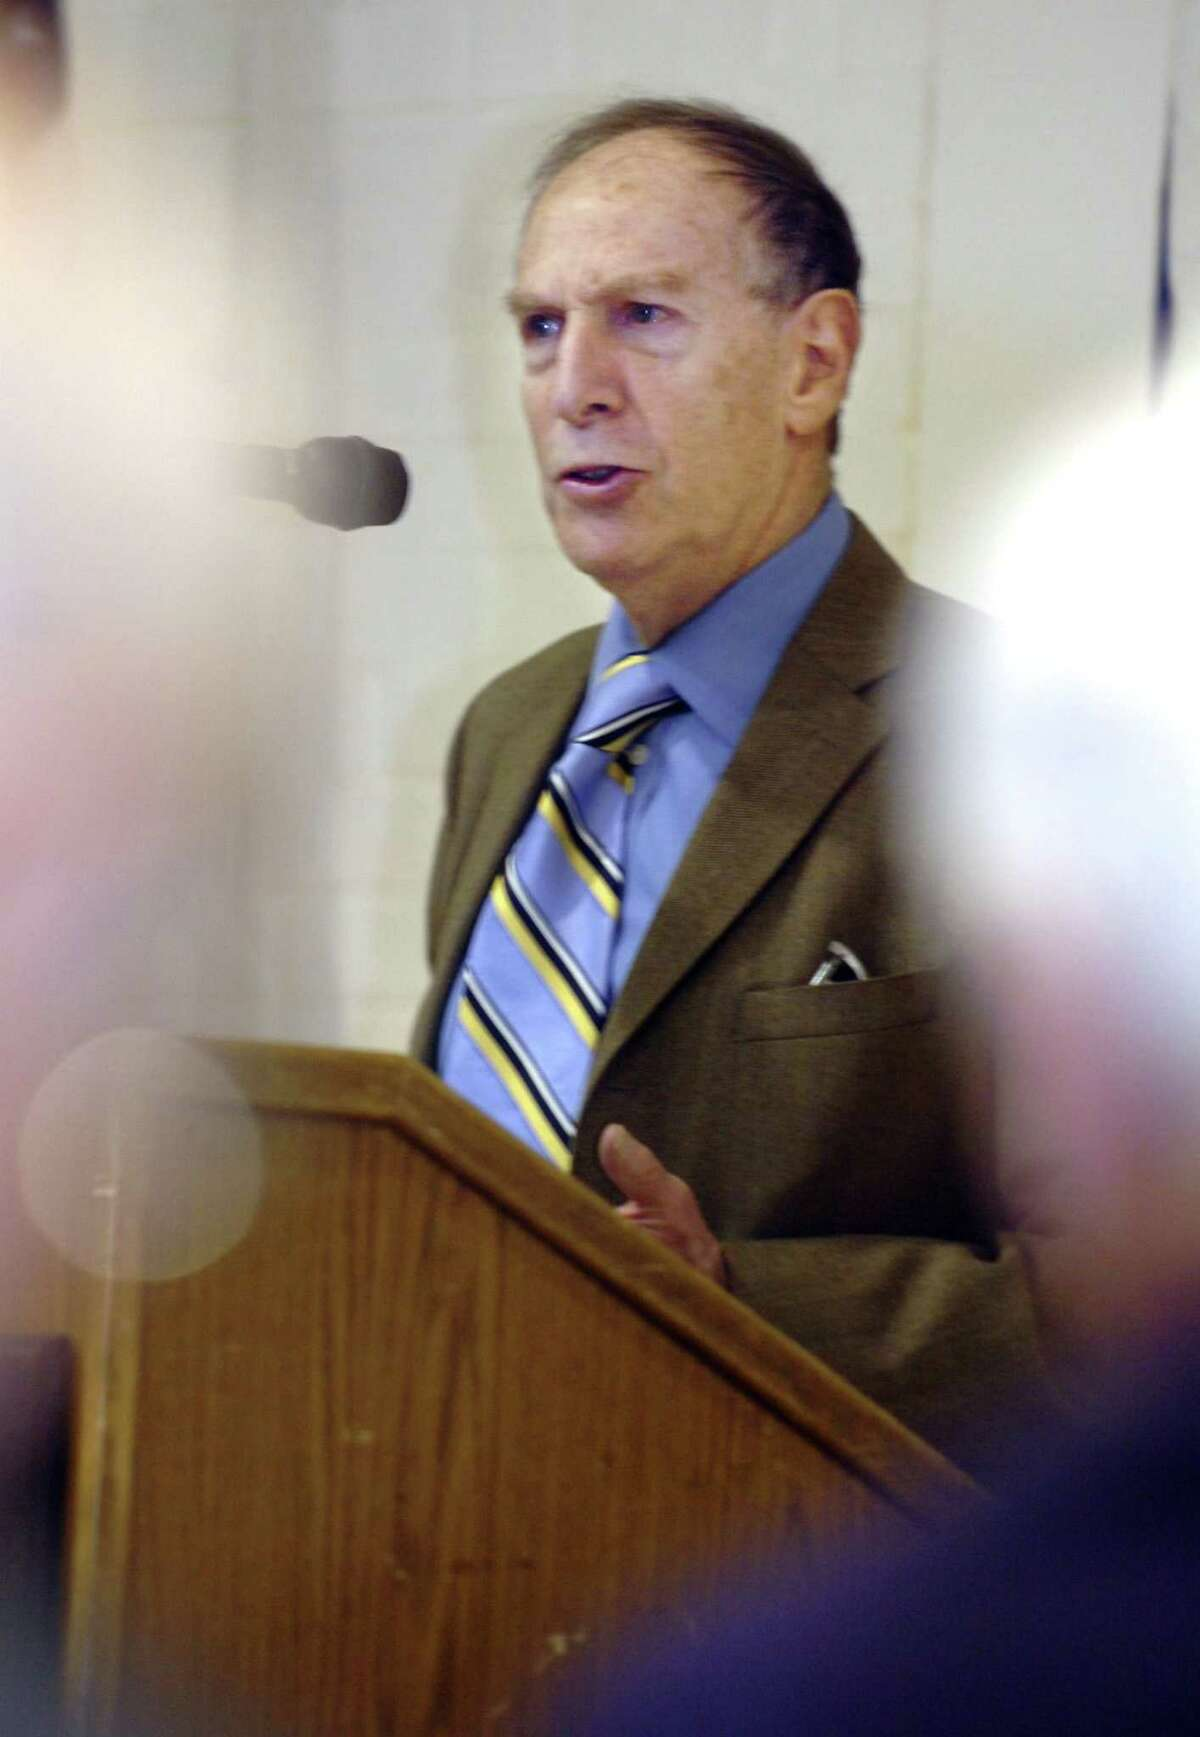 Journalist Len Levitt speaking on the Martha Moxley murder at the Greenwich YMCA, sponsored by the Retired Men's Association, in 2010. Levitt died at age 79 in his Stamford, Conn., home in May 18, 2020.